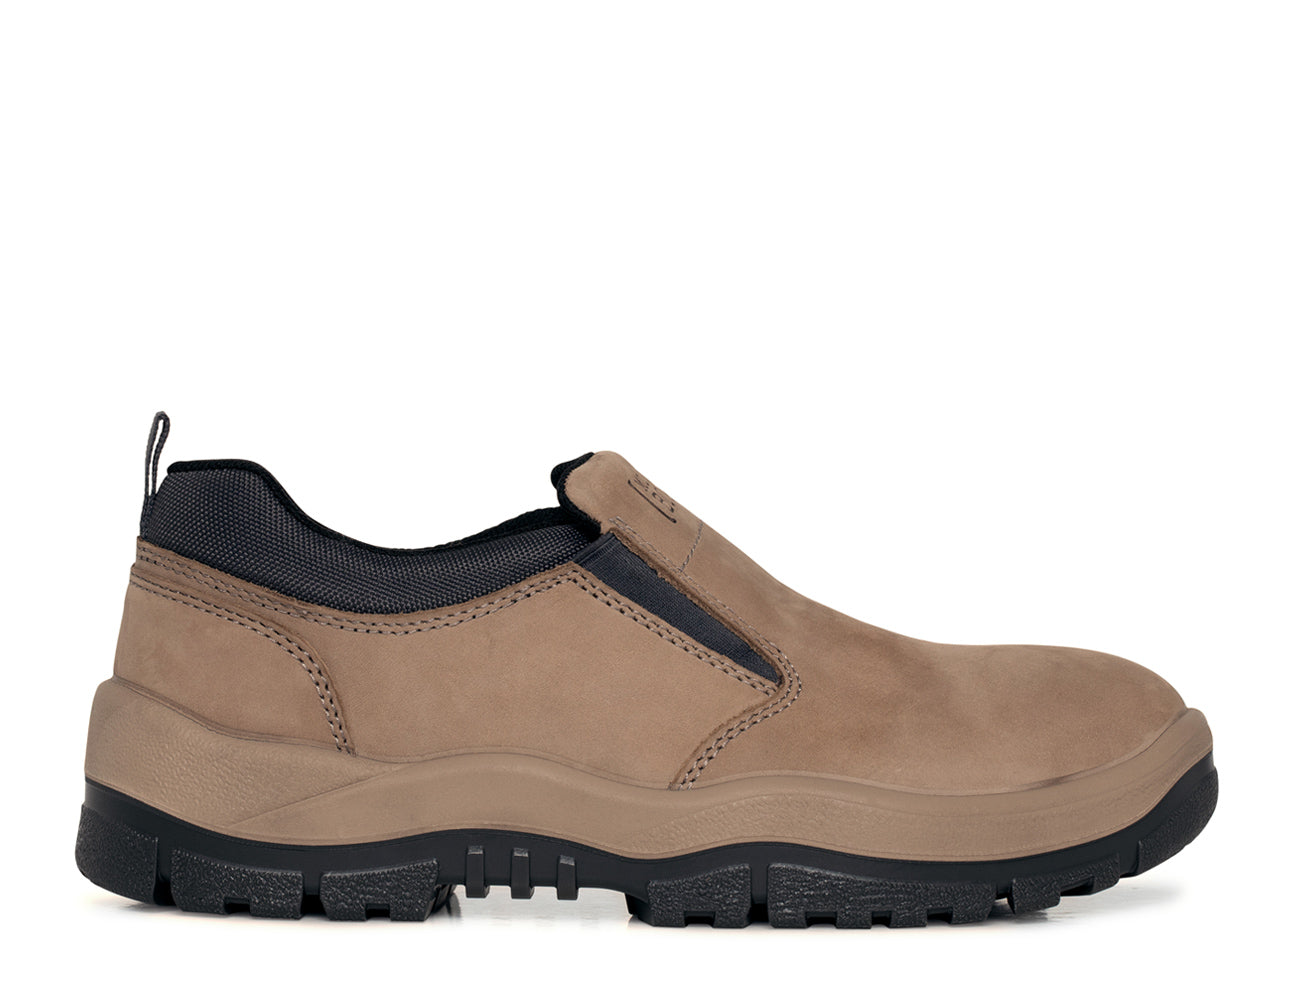 Mongrel Slip-On Safety Shoes - 315060